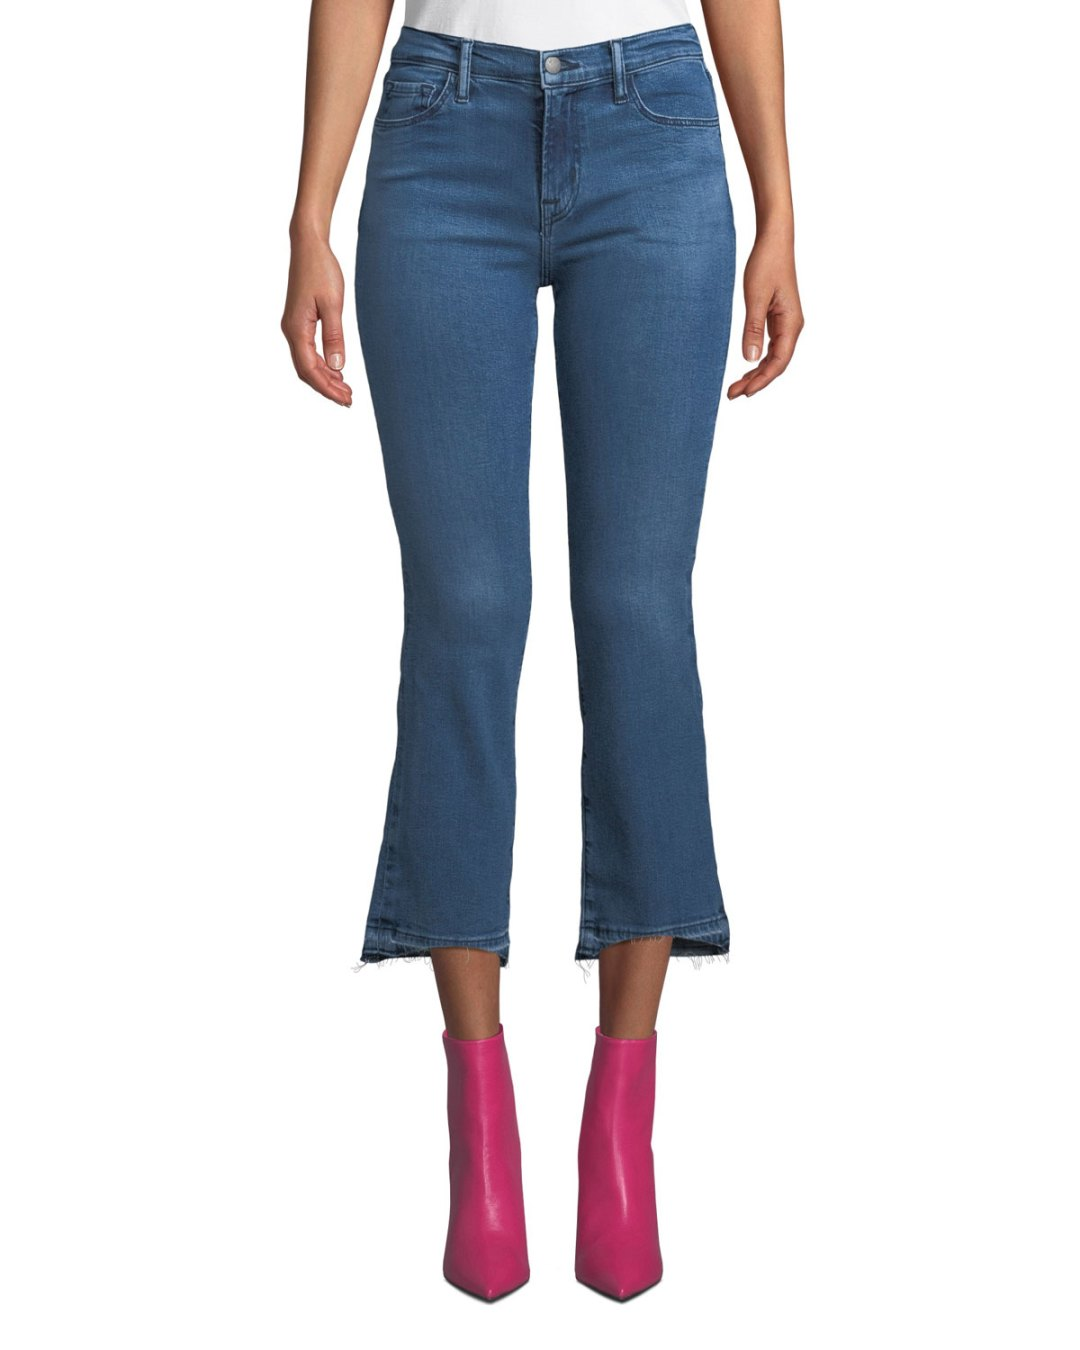 3d1f815103b02 ... $230.00 – Neiman Marcus – Selena Mid-Rise Cropped Boot-Cut Jeans with  Released Hem – $228.00